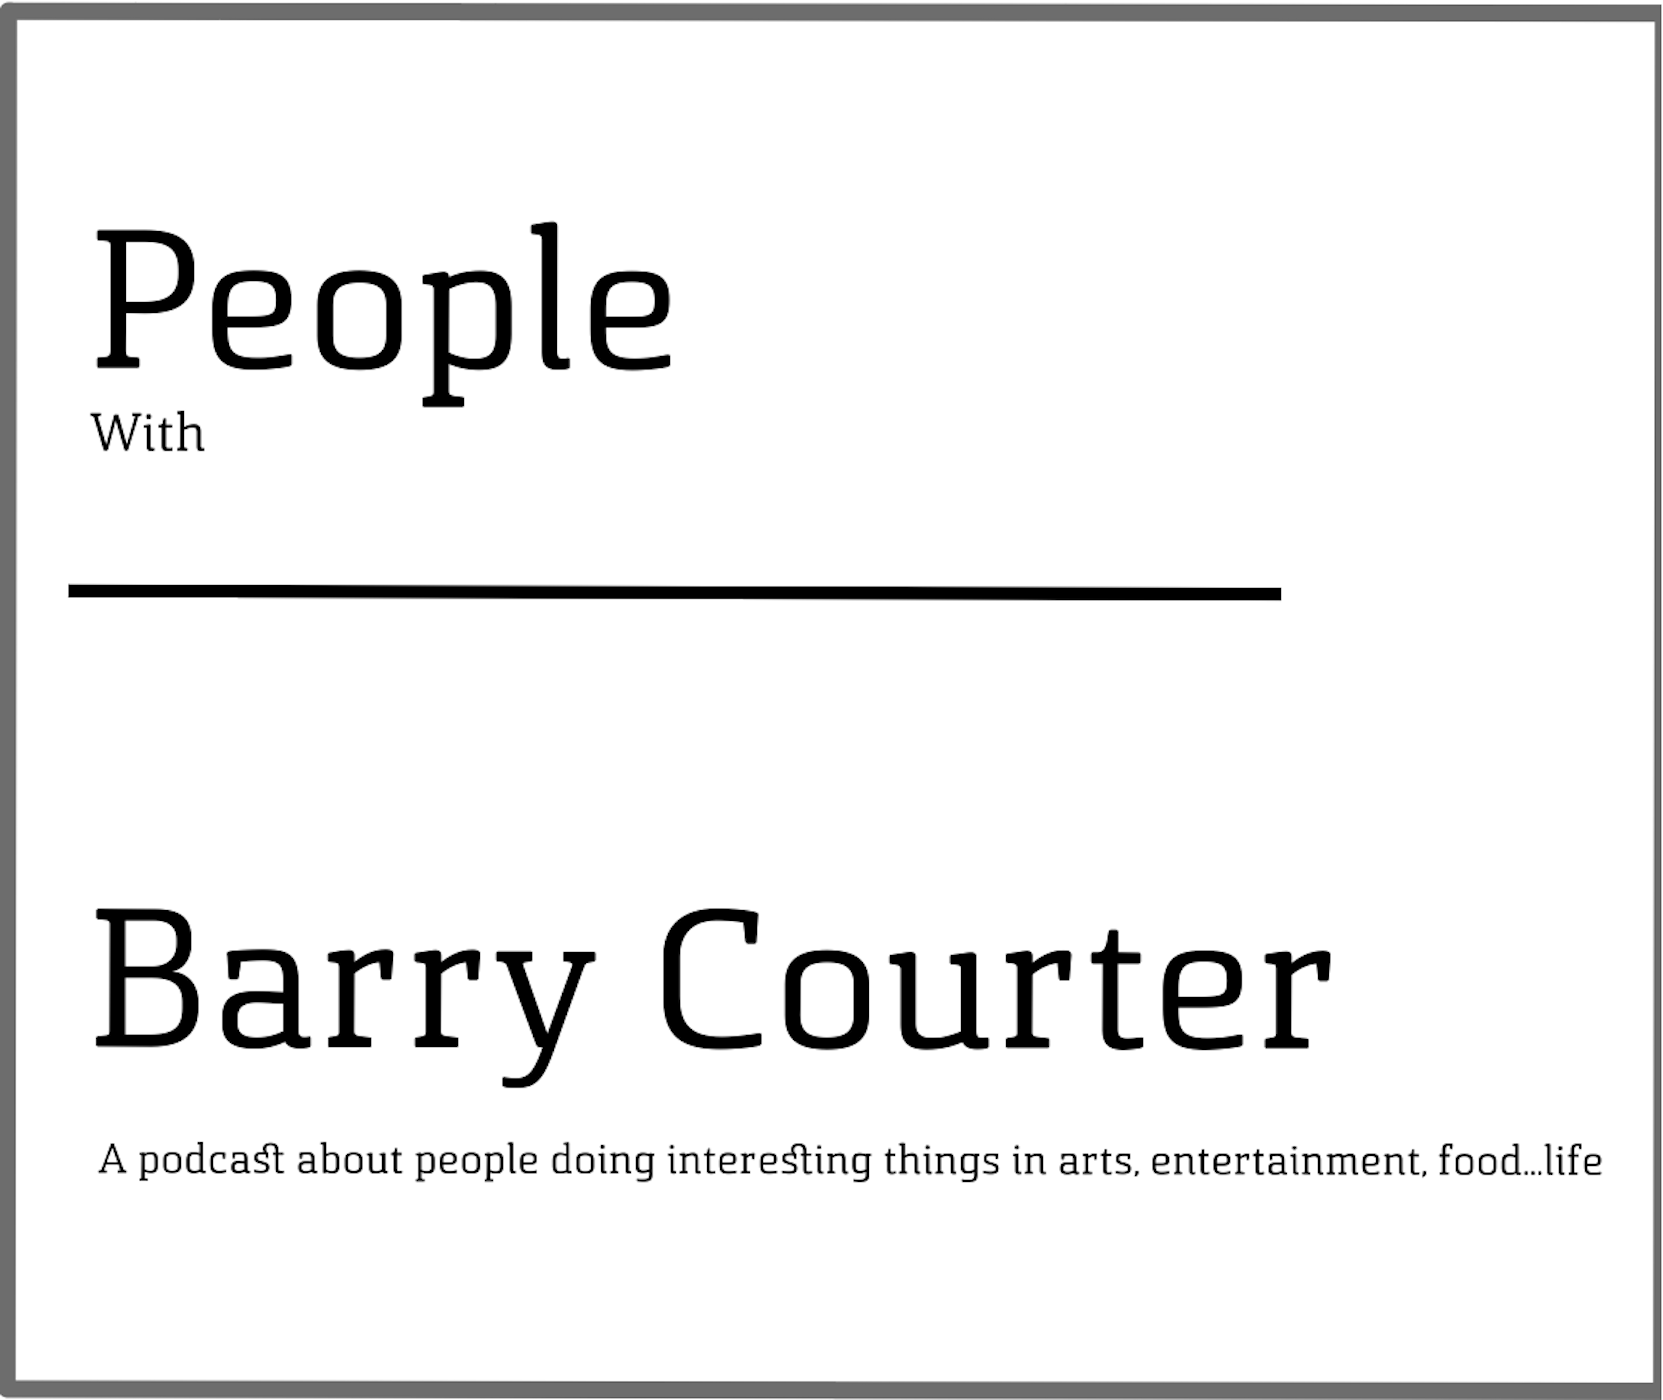 People with Barry Courter